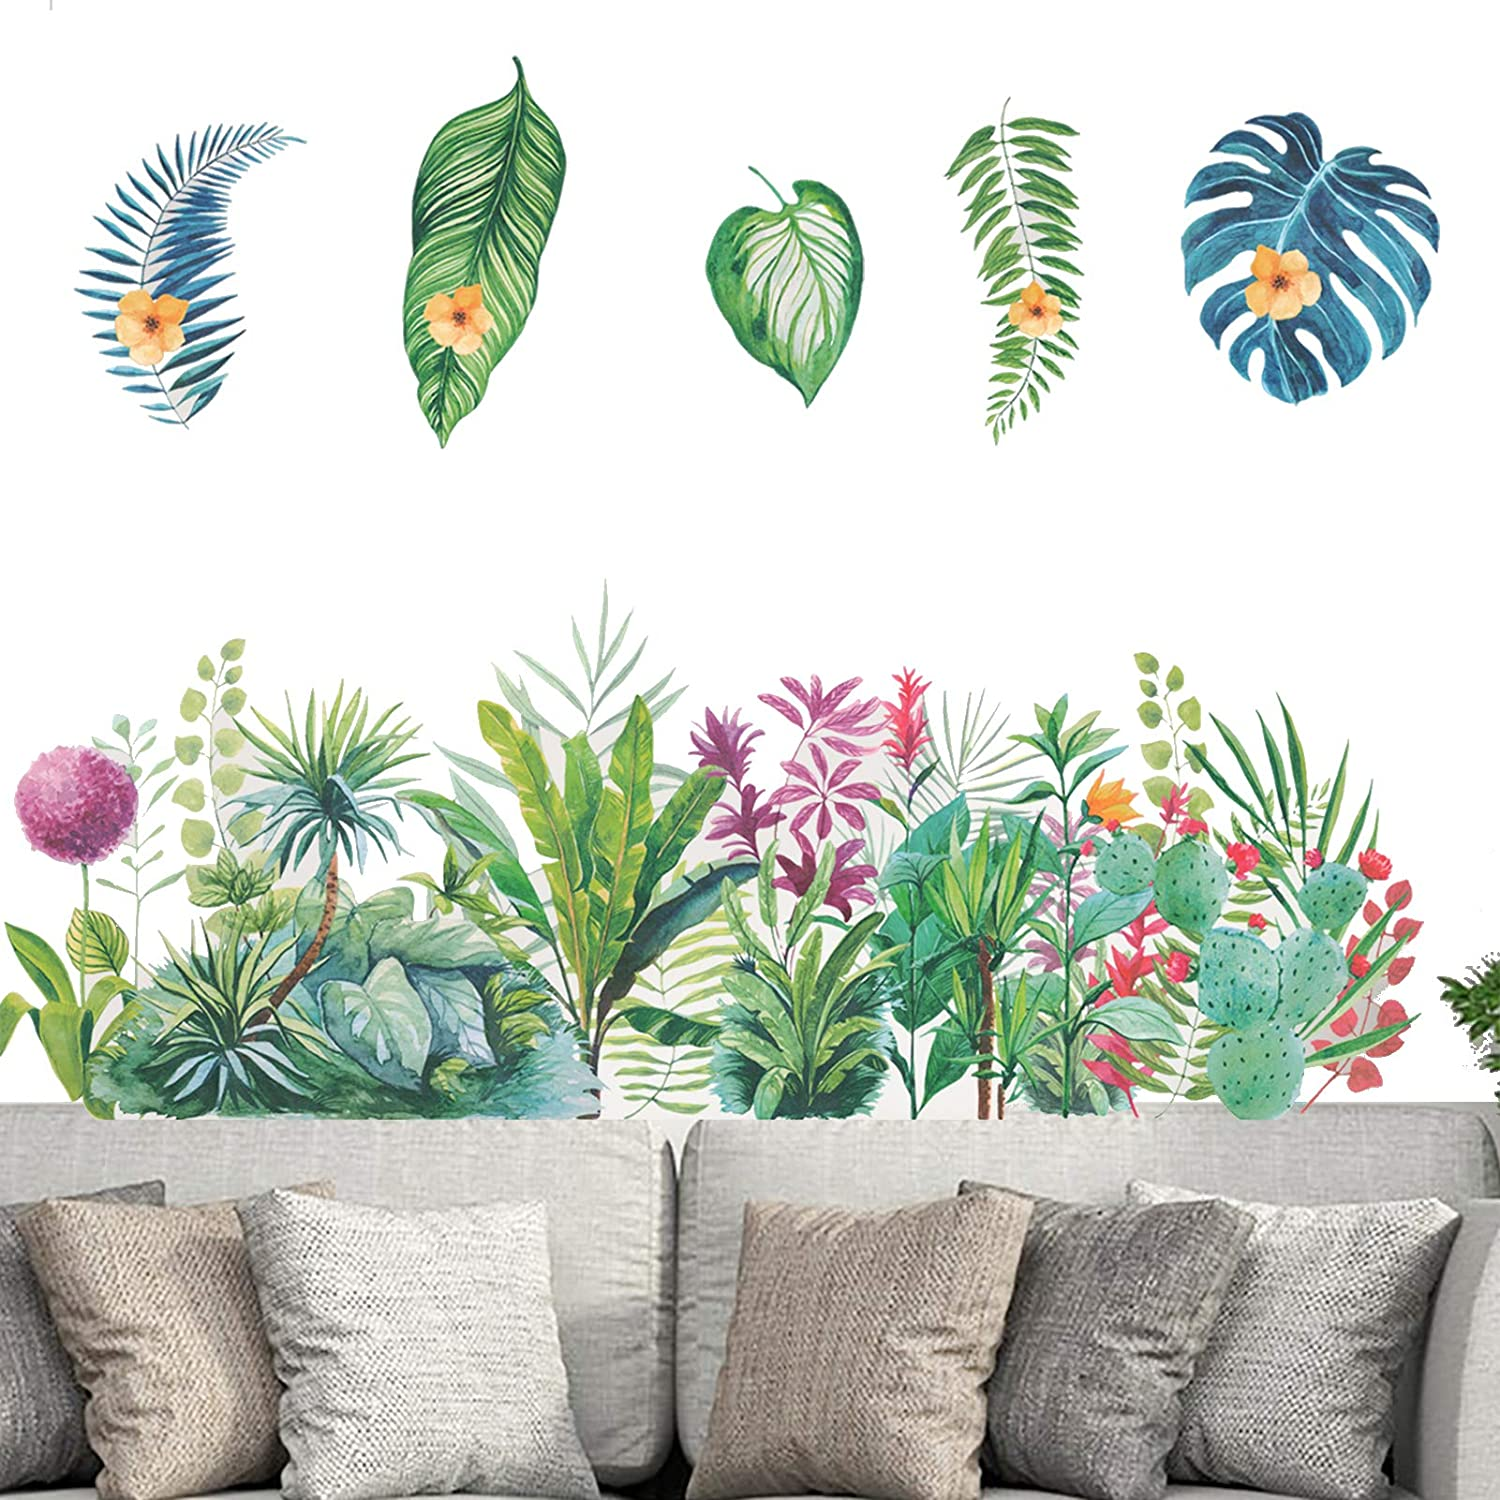 TANOKY Green Plants Tropical Leaf Flower Wall Decal Stickers, Girls Nursery Room Wall Decoration Art Decor Decals, DIY Wall Murals for Bedroom Living Room Home Decoration - Safe on Walls